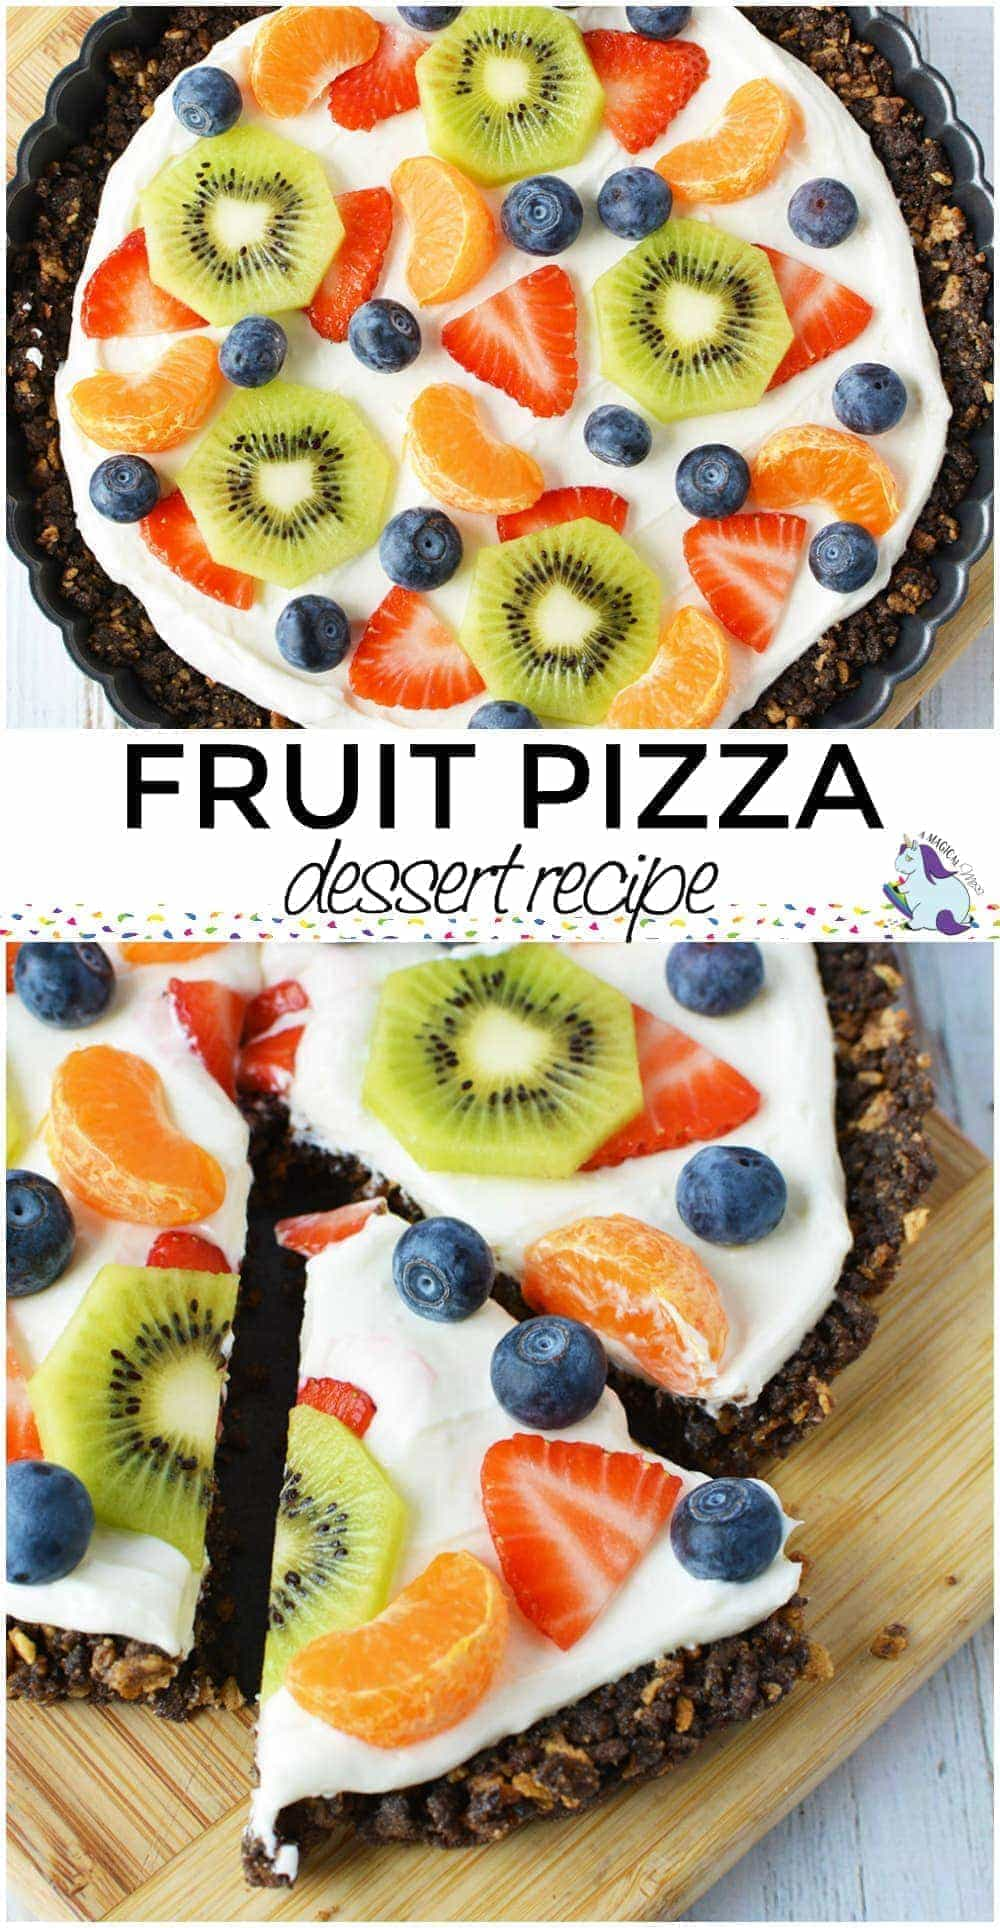 Sweet and Colorful Fruit Pizza Dessert Recipe #fruit #dessertpizza #dessert #colorful #recipes #recipe #tart #fruittart